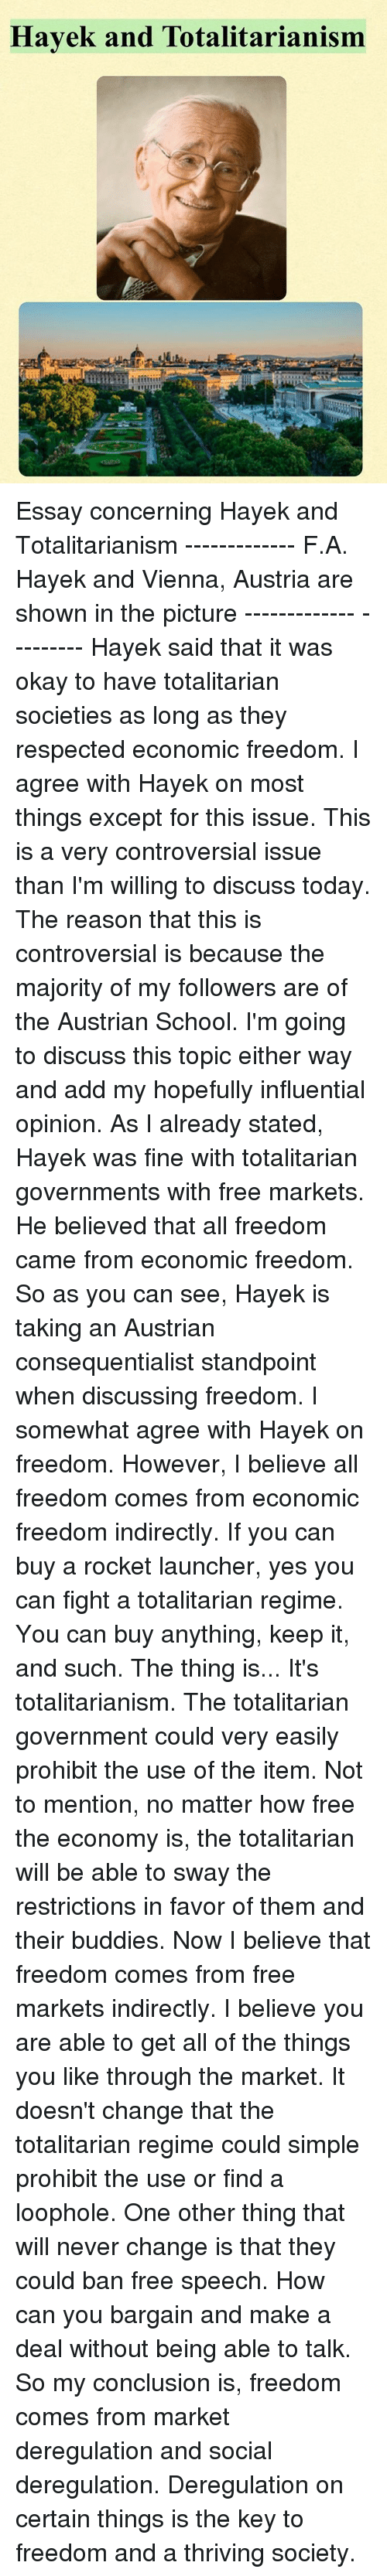 funny vienna memes of on sizzle defeation memes prohibition and hayek and totalitarianism essay concerning hayek and totalitarianism